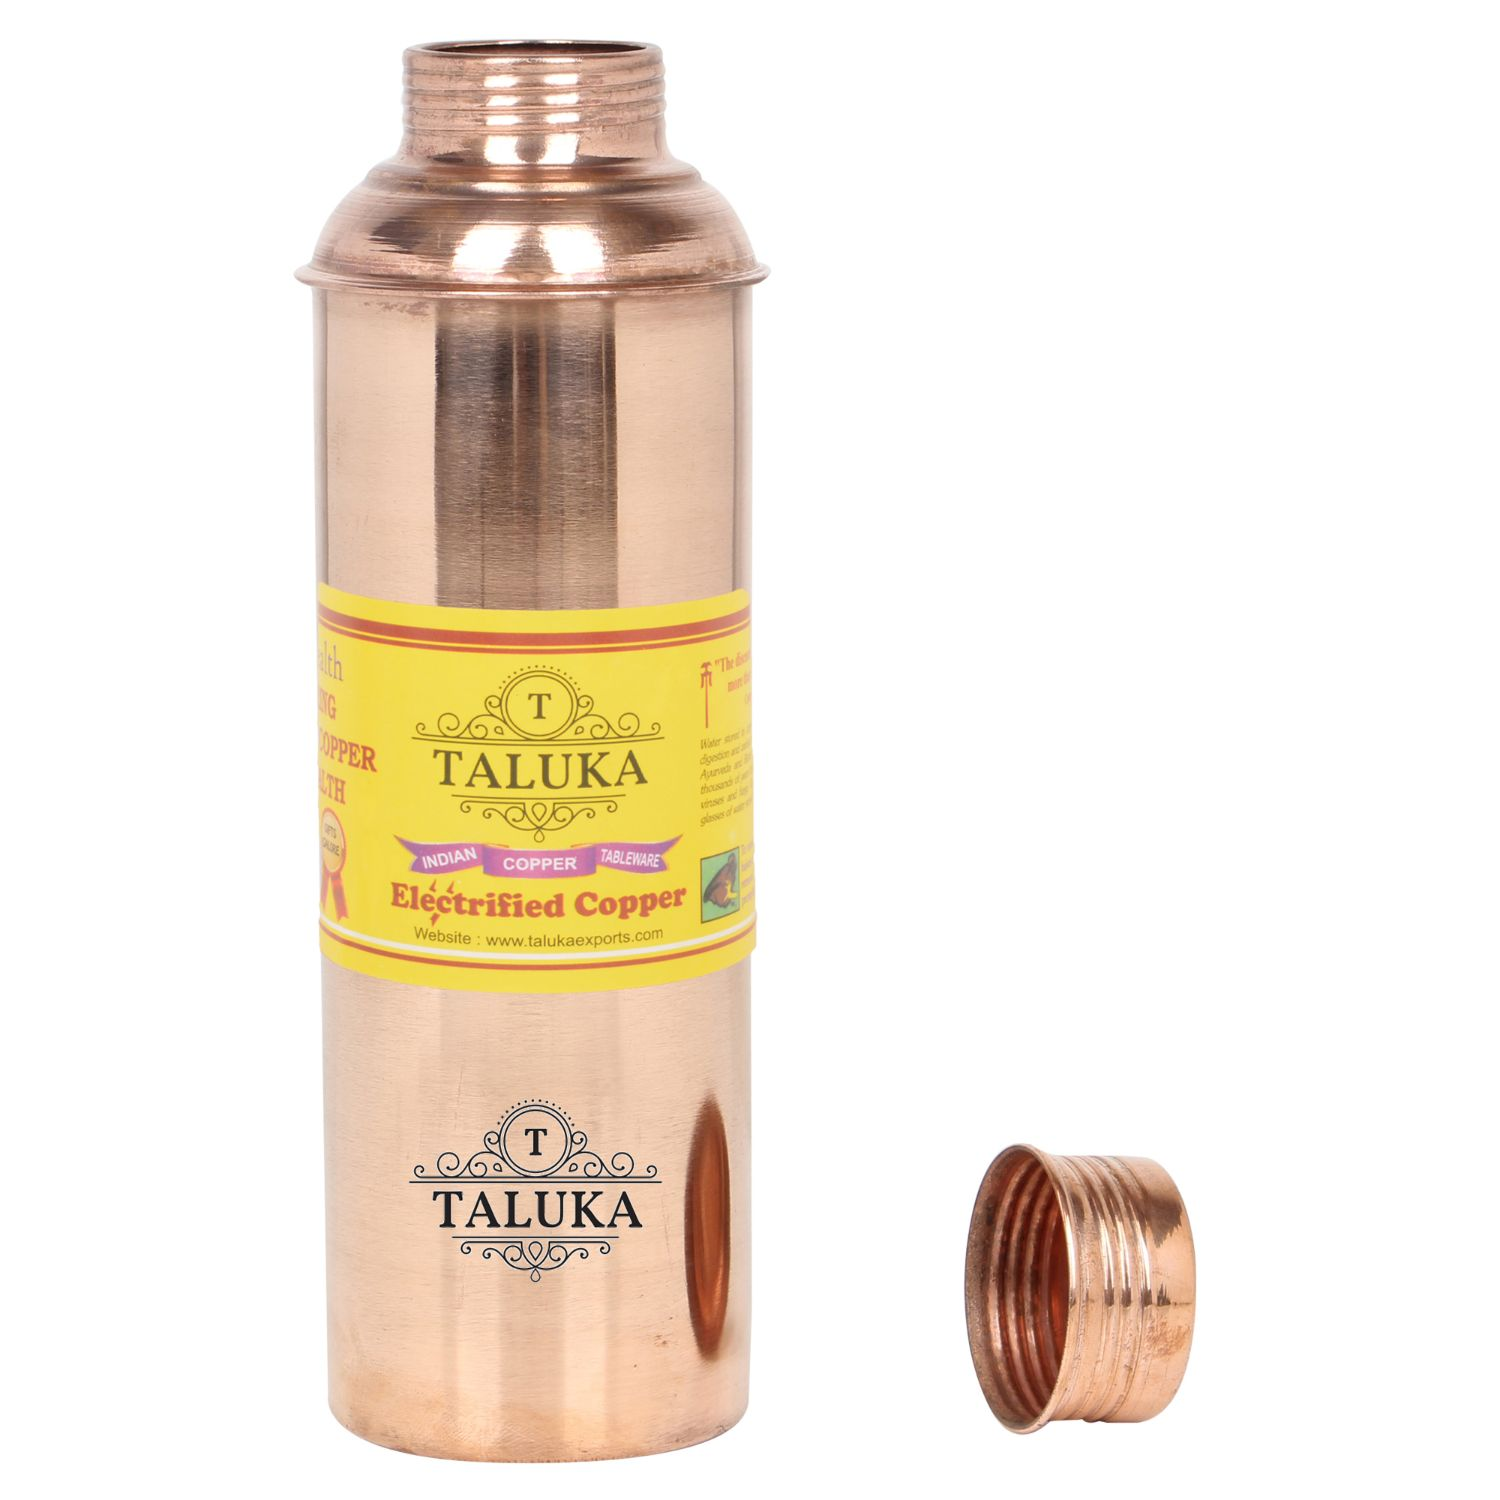 Handmade Pure Copper Bisleri And Etching Design Water Bottle 800 ML Set Of 12 Drink Ware Storage Bottle For Good Health